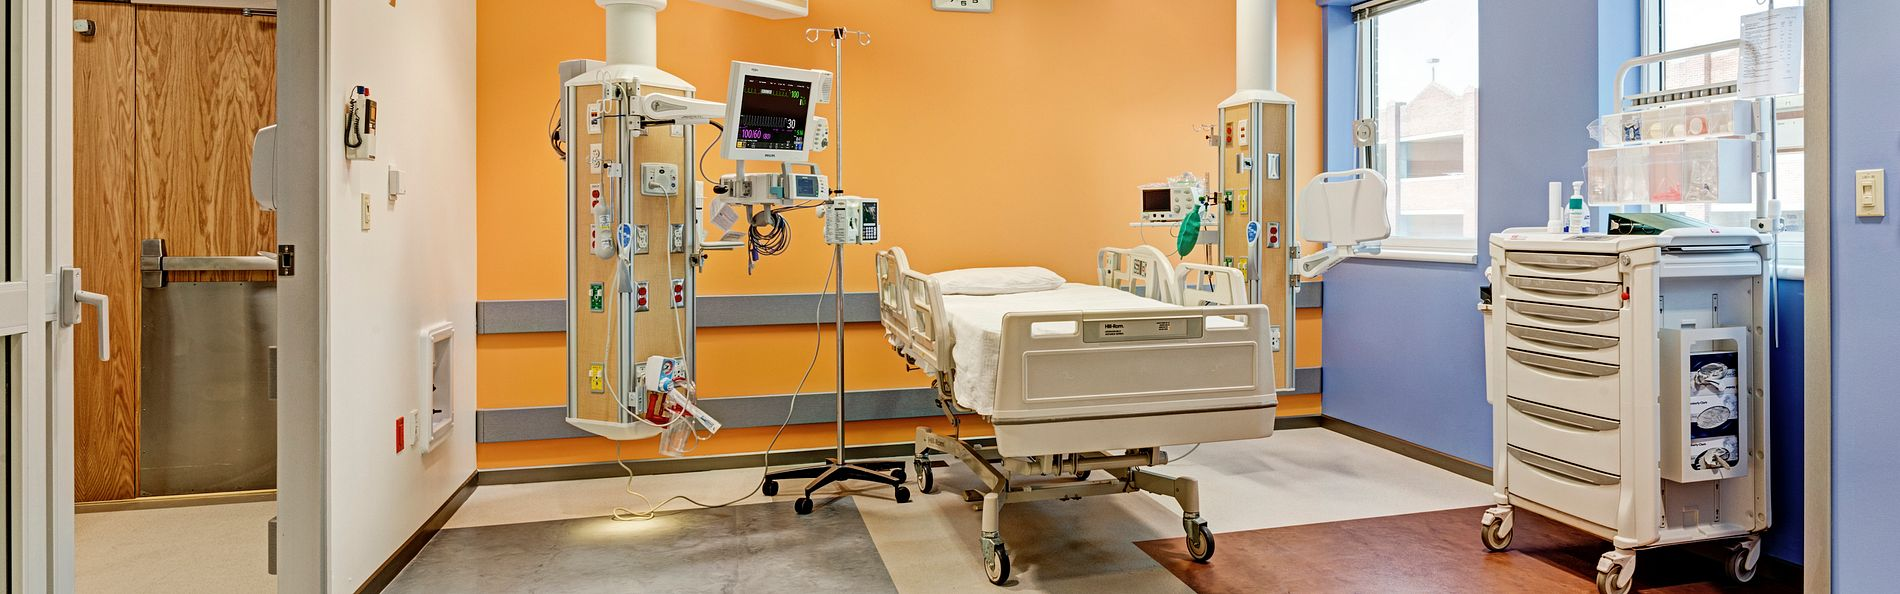 This new equipment provides staff with easy access to the needed equipment